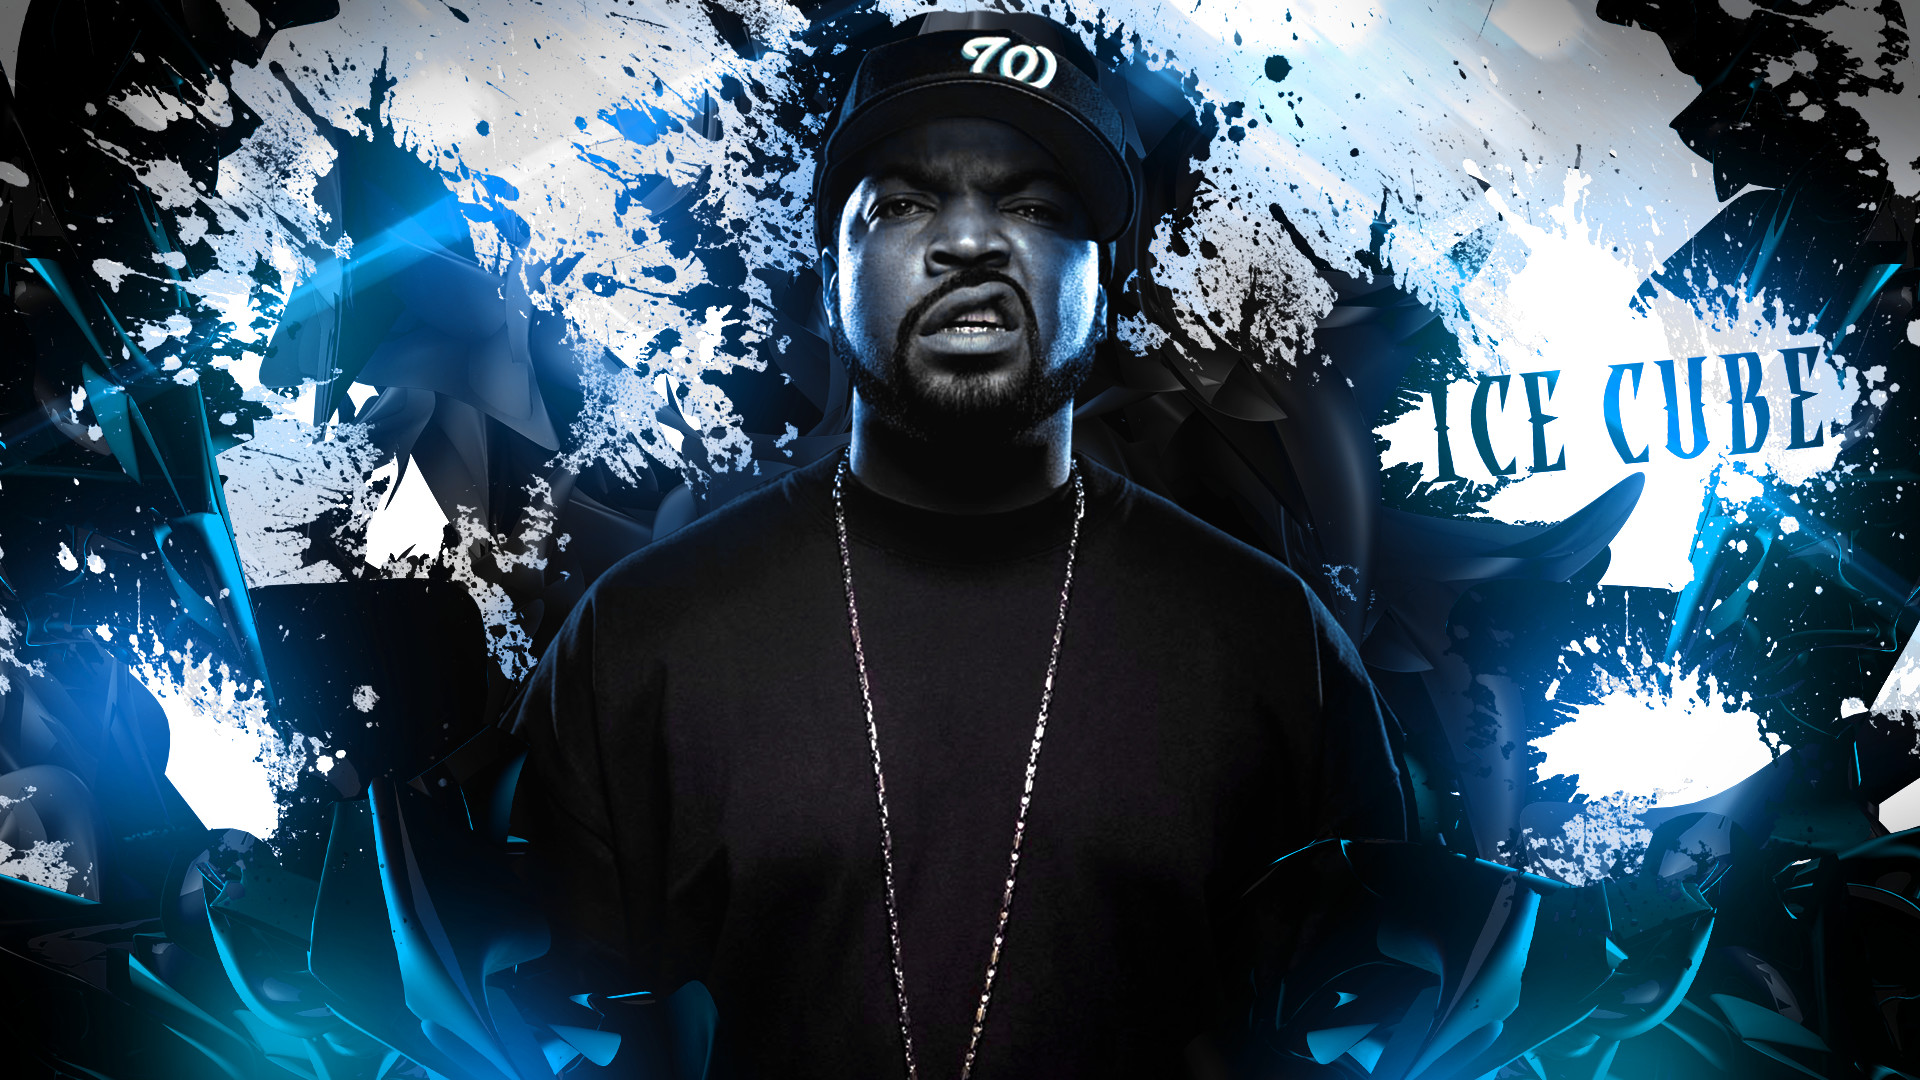 Ice Cube | Ice Cube Desktop Background – Wallpaper, High Definition, High  Quality .